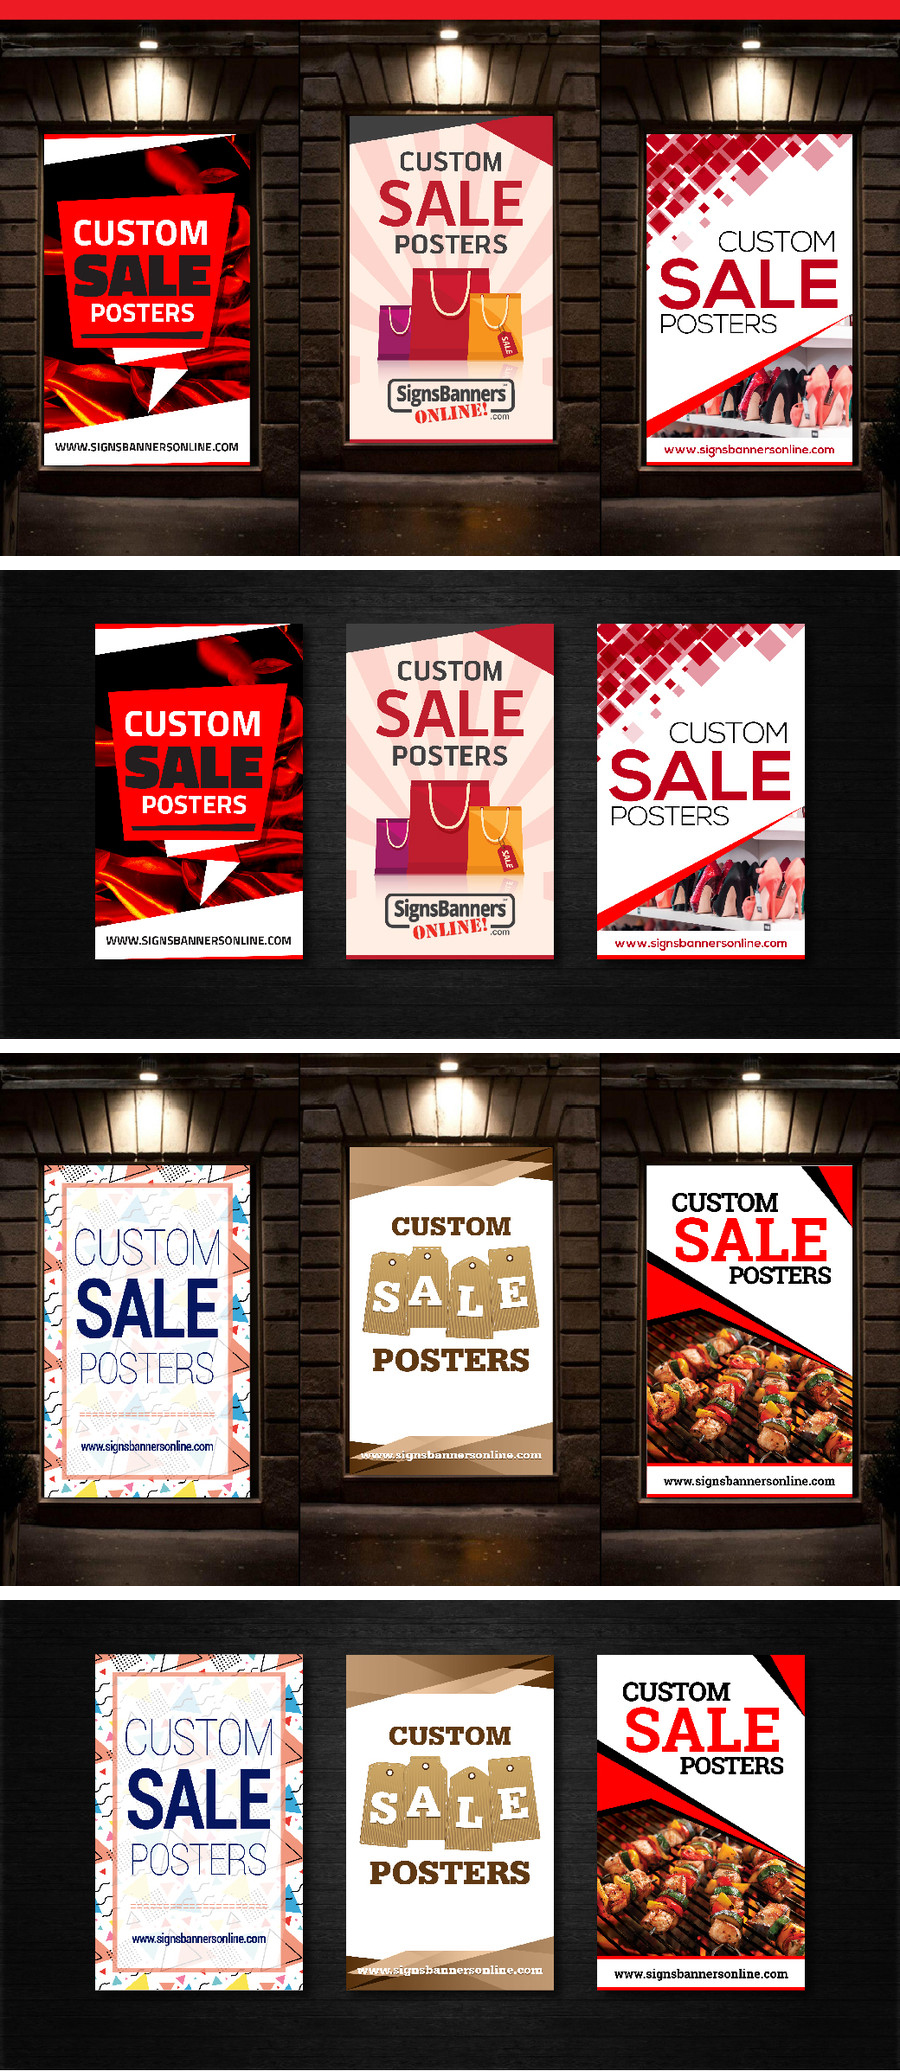 Set of graphic Custom Posters for Window Display with different themes and color choices